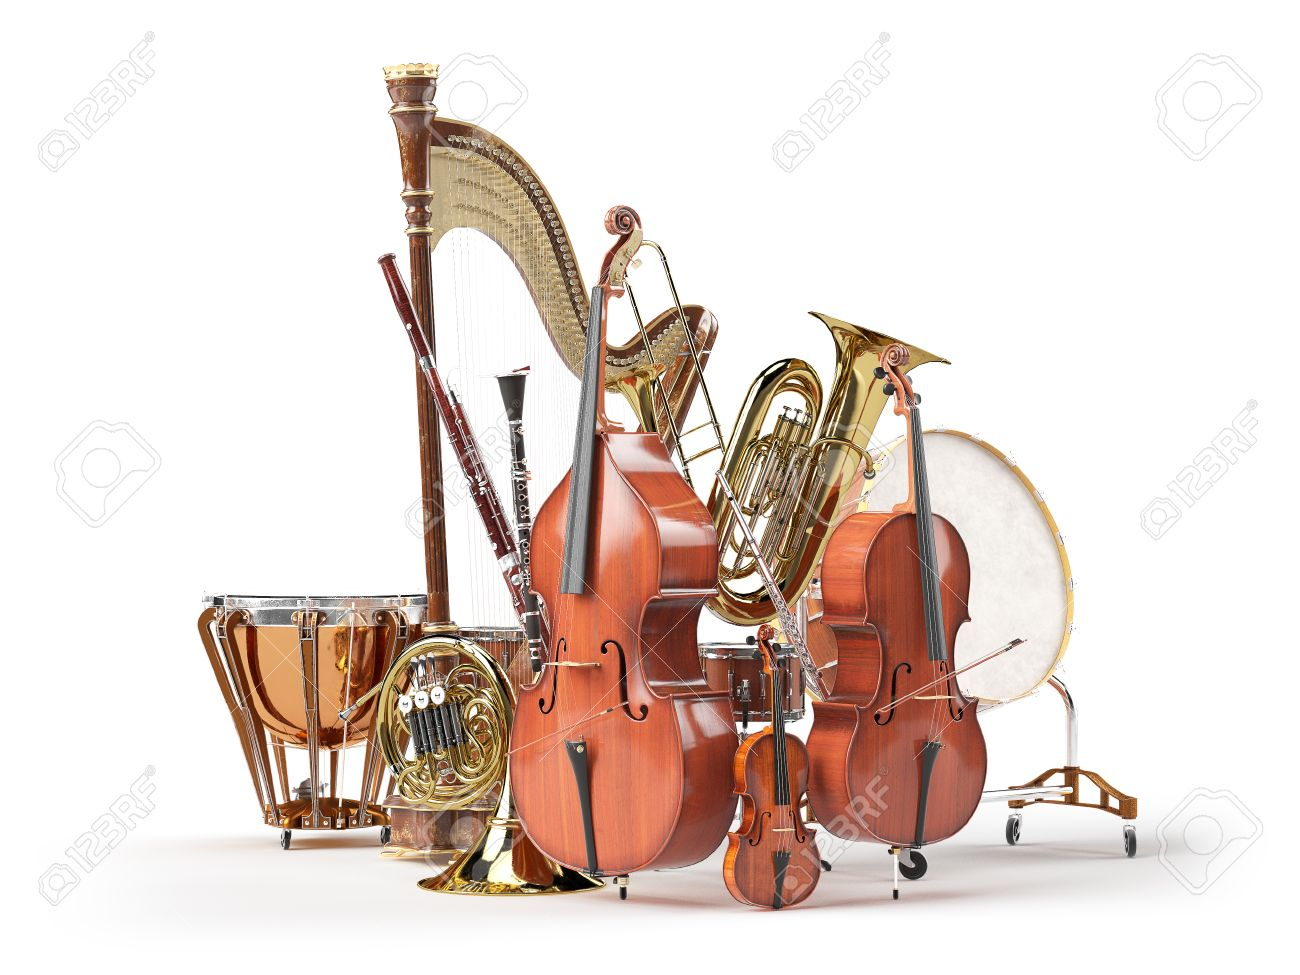 Orchestra musical instruments isolated on white. 3d render Standard-Bild - 58115944